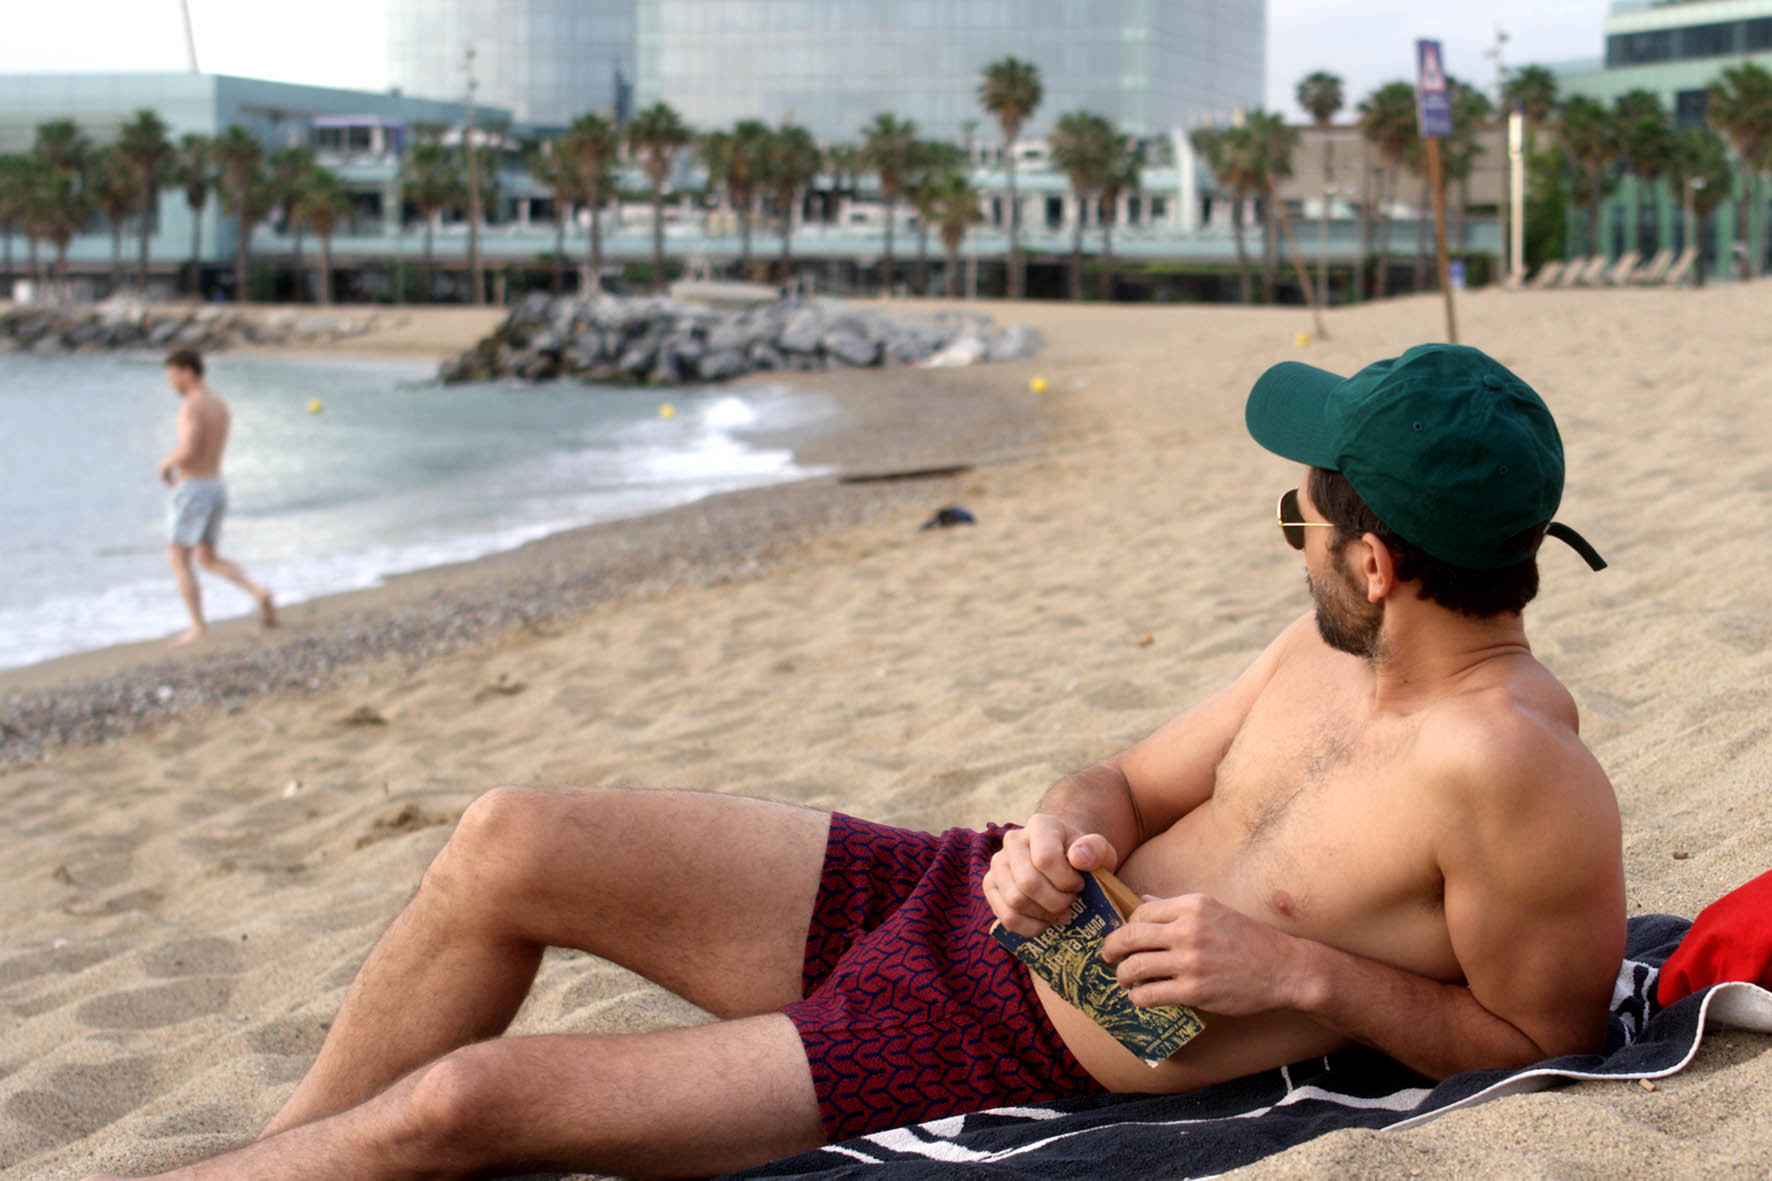 REVIEW: Argentine Drama 'Fin de Siglo' Explores the Changing Face of Gay Male Intimacy